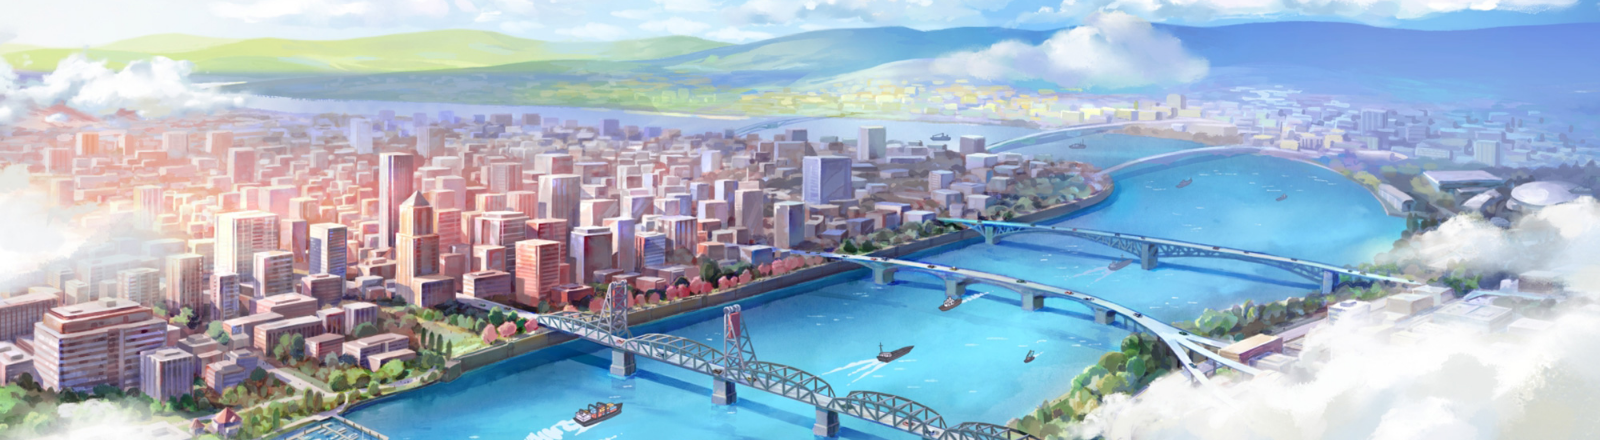 Animated view of downtown Portland featuring 4 bridges with boats on the Willamette River and white clouds covering eastside